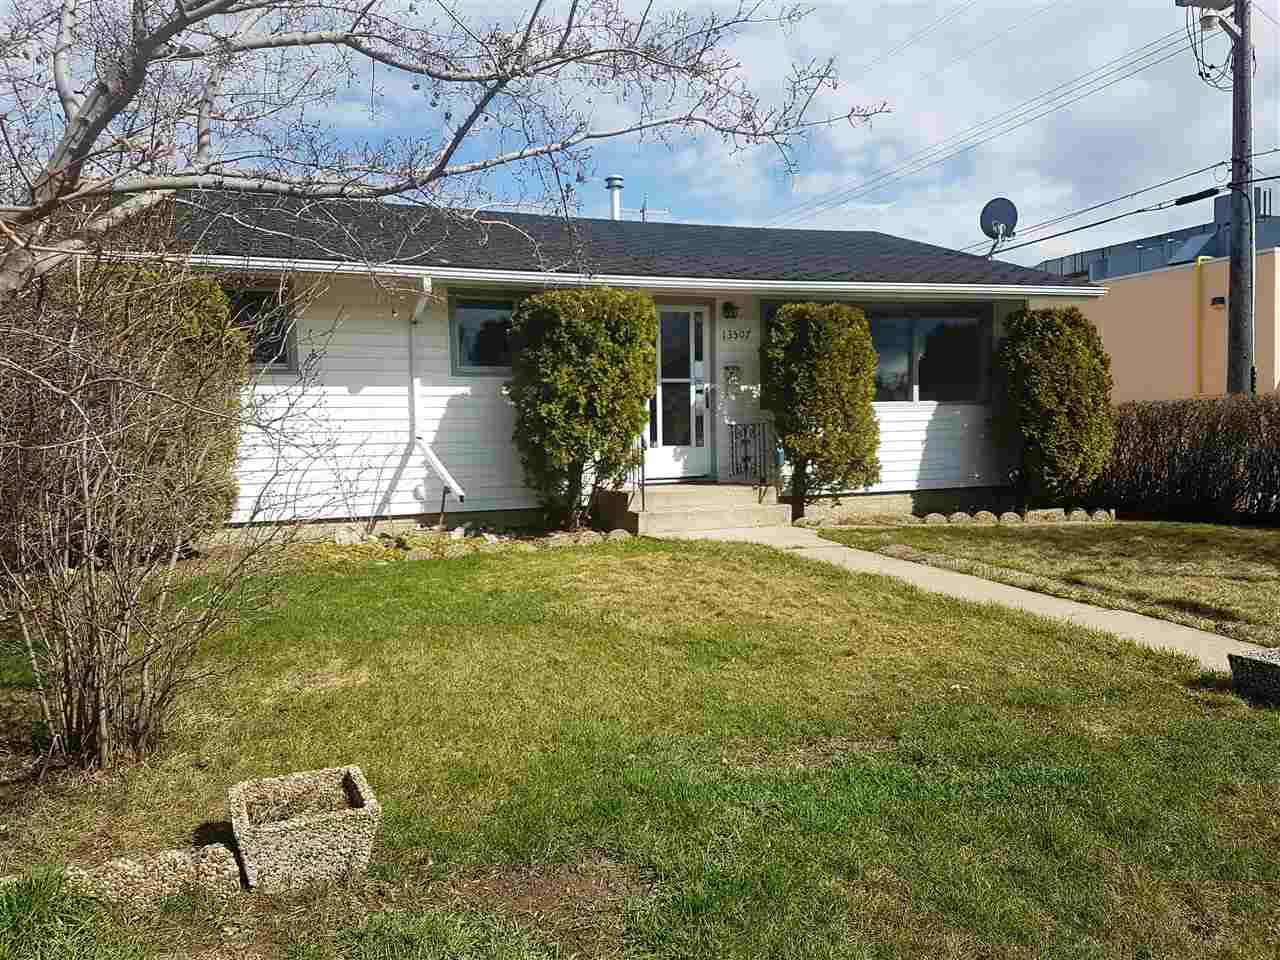 Main Photo: 13507 126 Street in Edmonton: Zone 01 House for sale : MLS(r) # E4062205